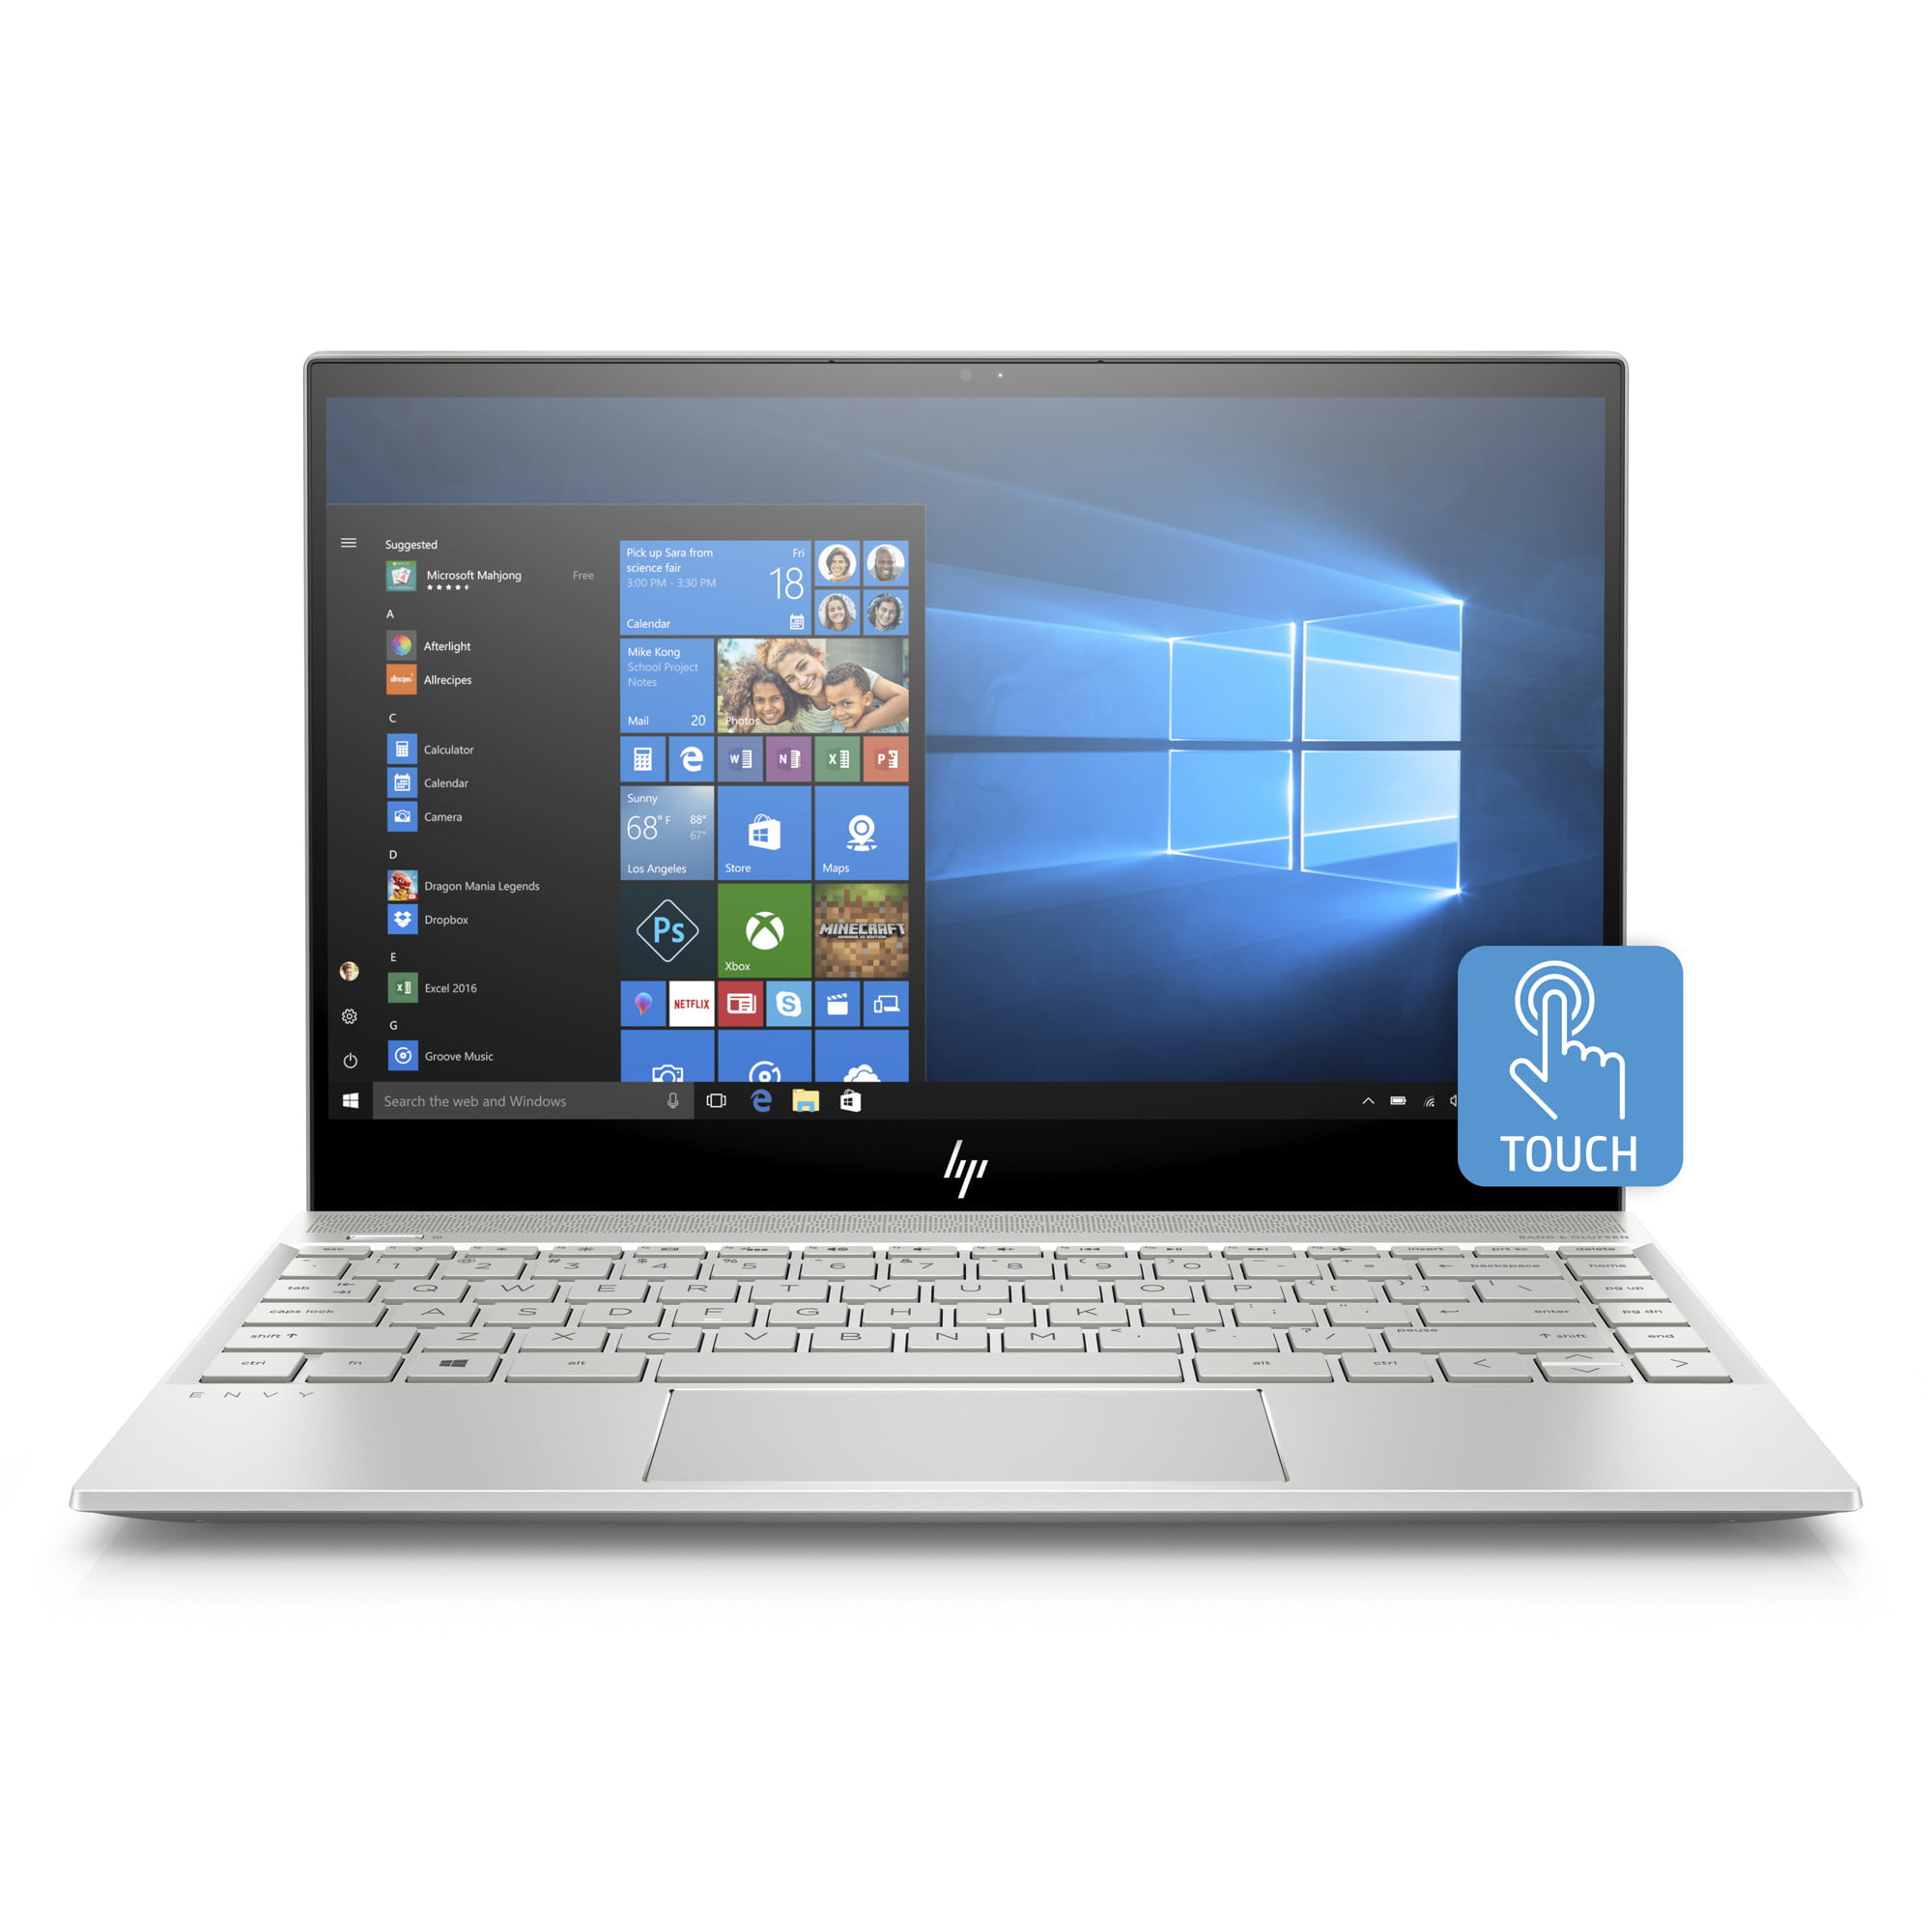 HP Envy 13-AH0010NR Natural Silver 13.3 inch Touch Laptop, Windows 10, Core i7-8550U QC Processor, 8GB Memory, 256 GB... by HP